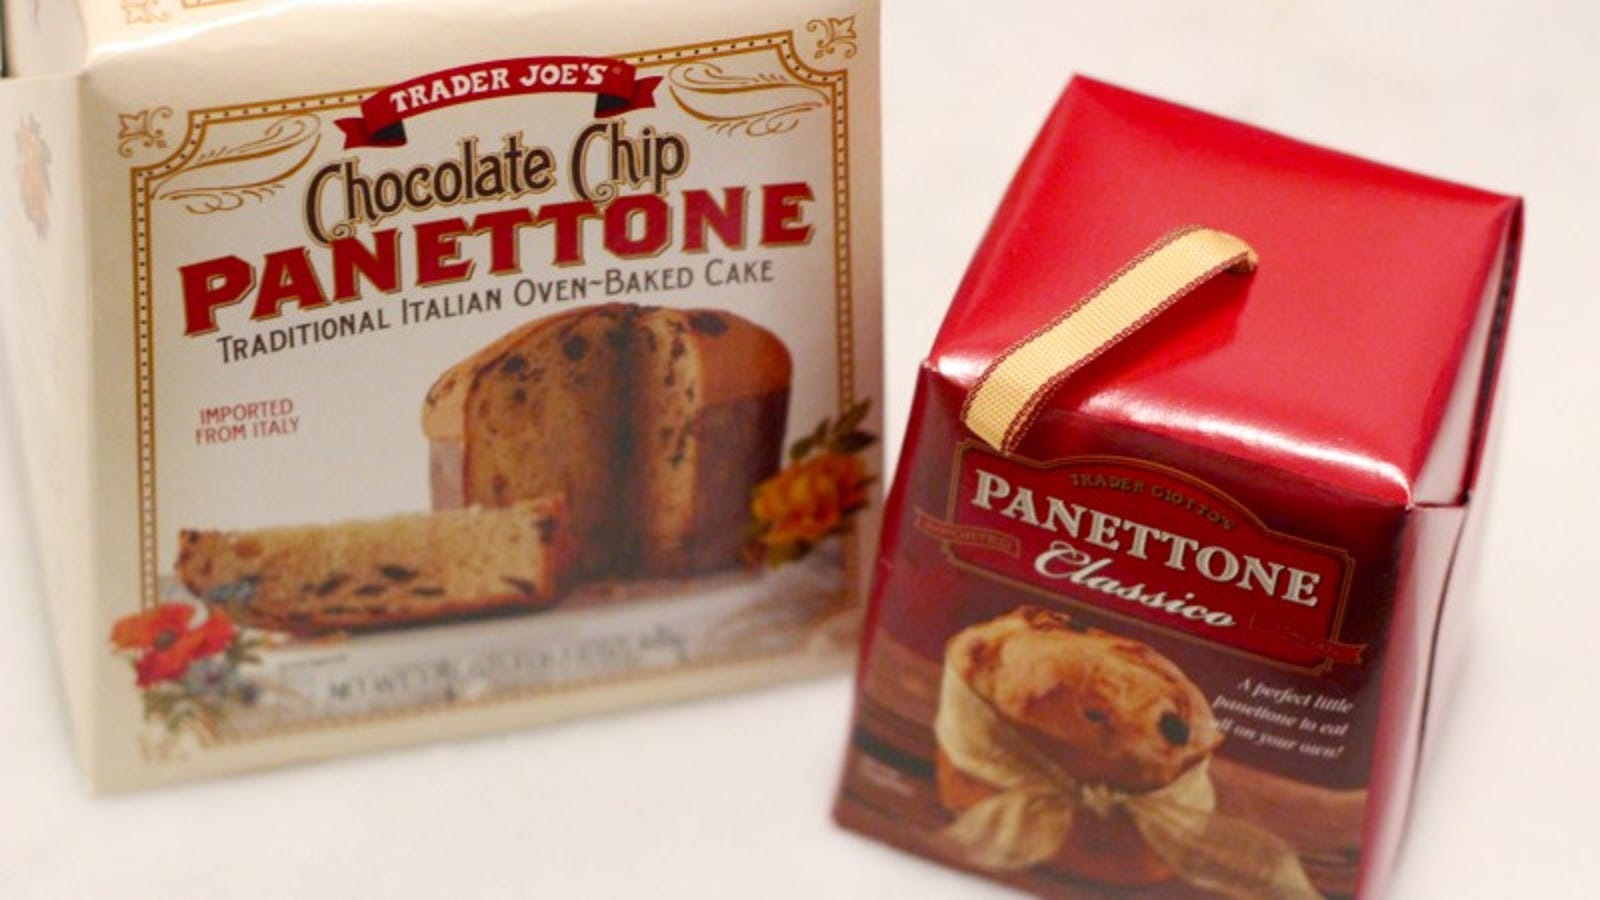 Chocolate Chip Pannetone ($4.49) and Pannetone Classico Mini ($1.79)